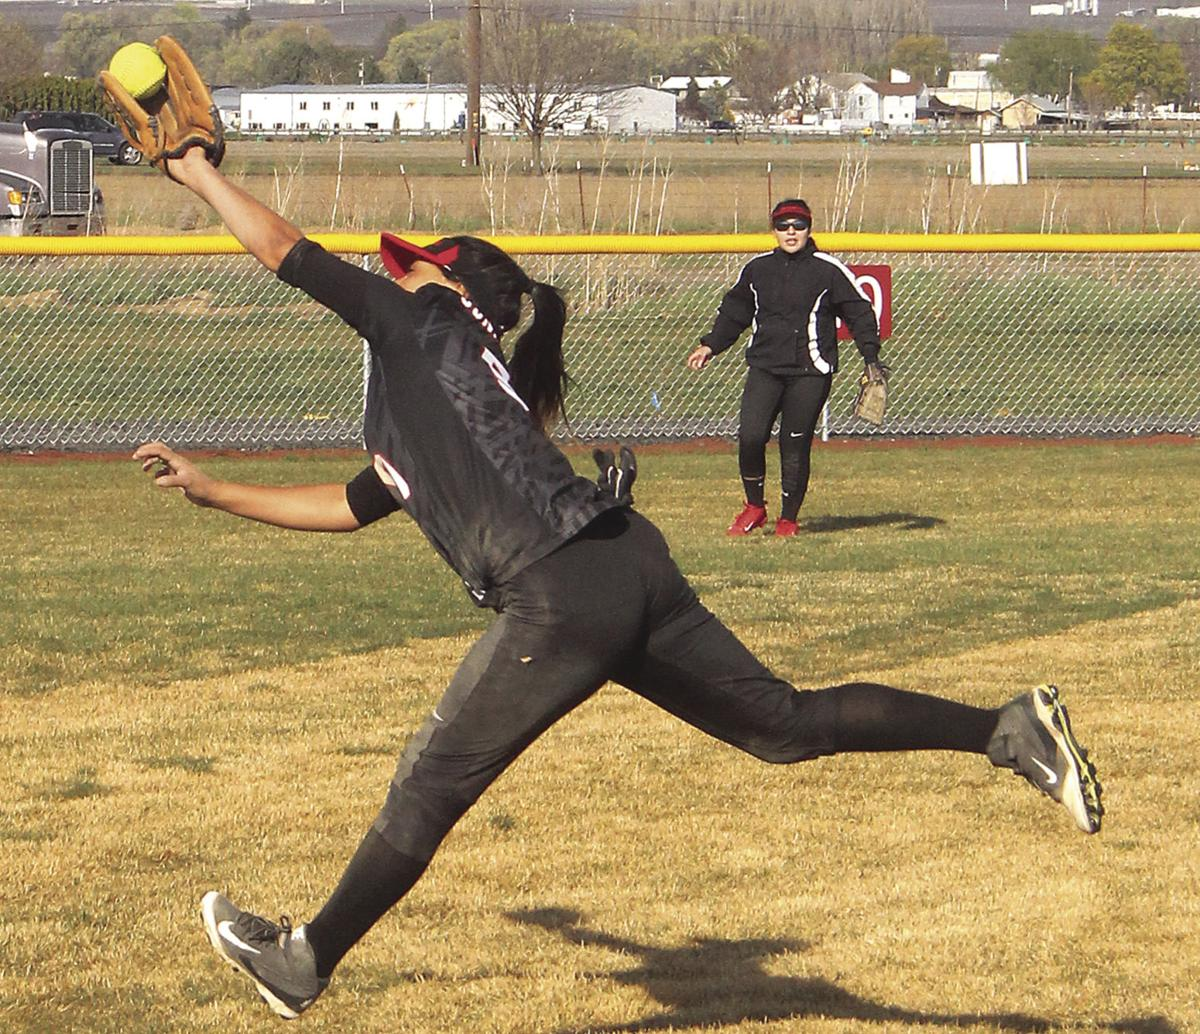 Chiefs rout Sunnyside, 13-0, in fastpitch